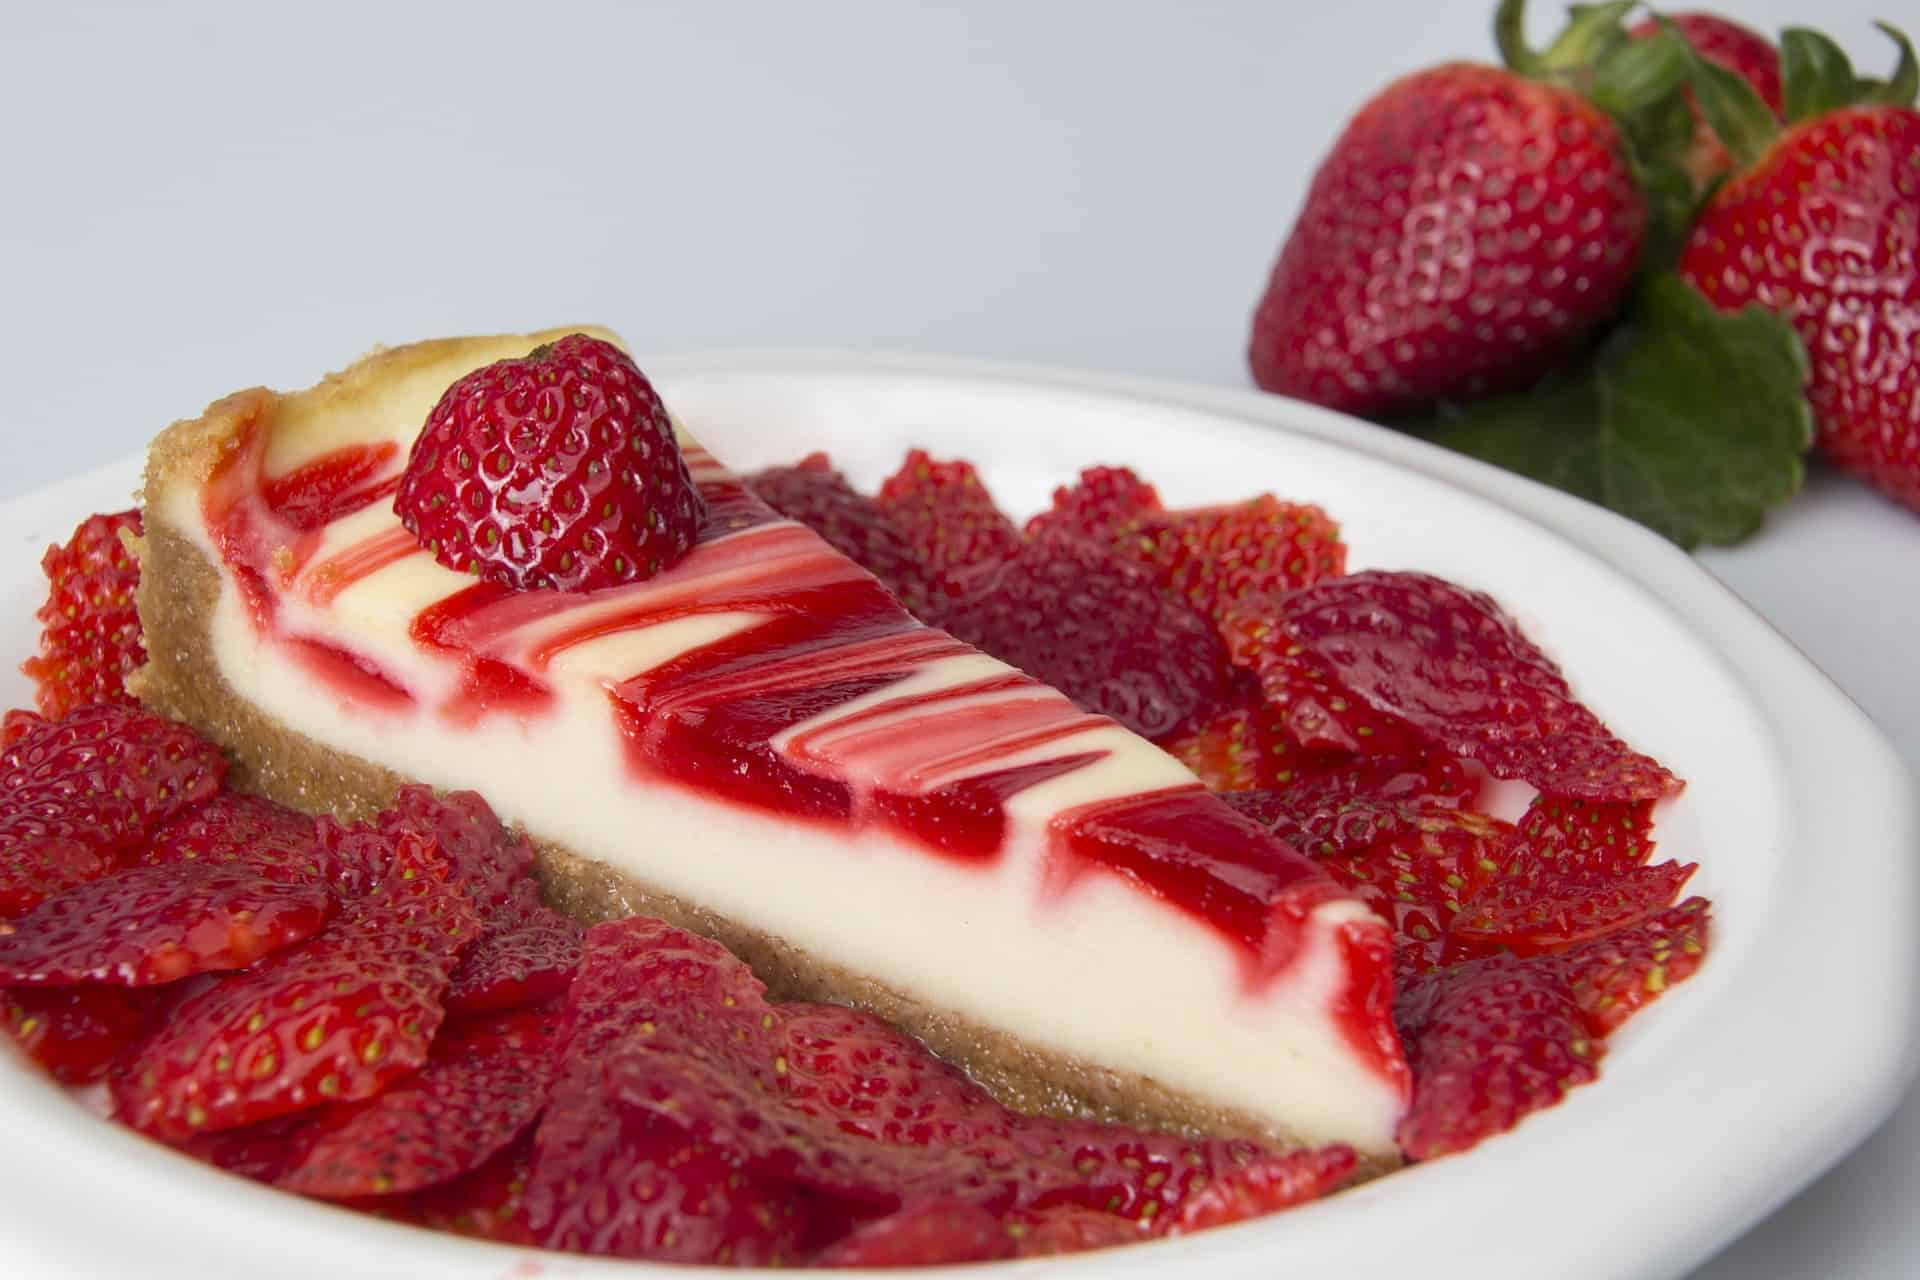 Home Made Cheese Cake Recipe: Simple Ingredients